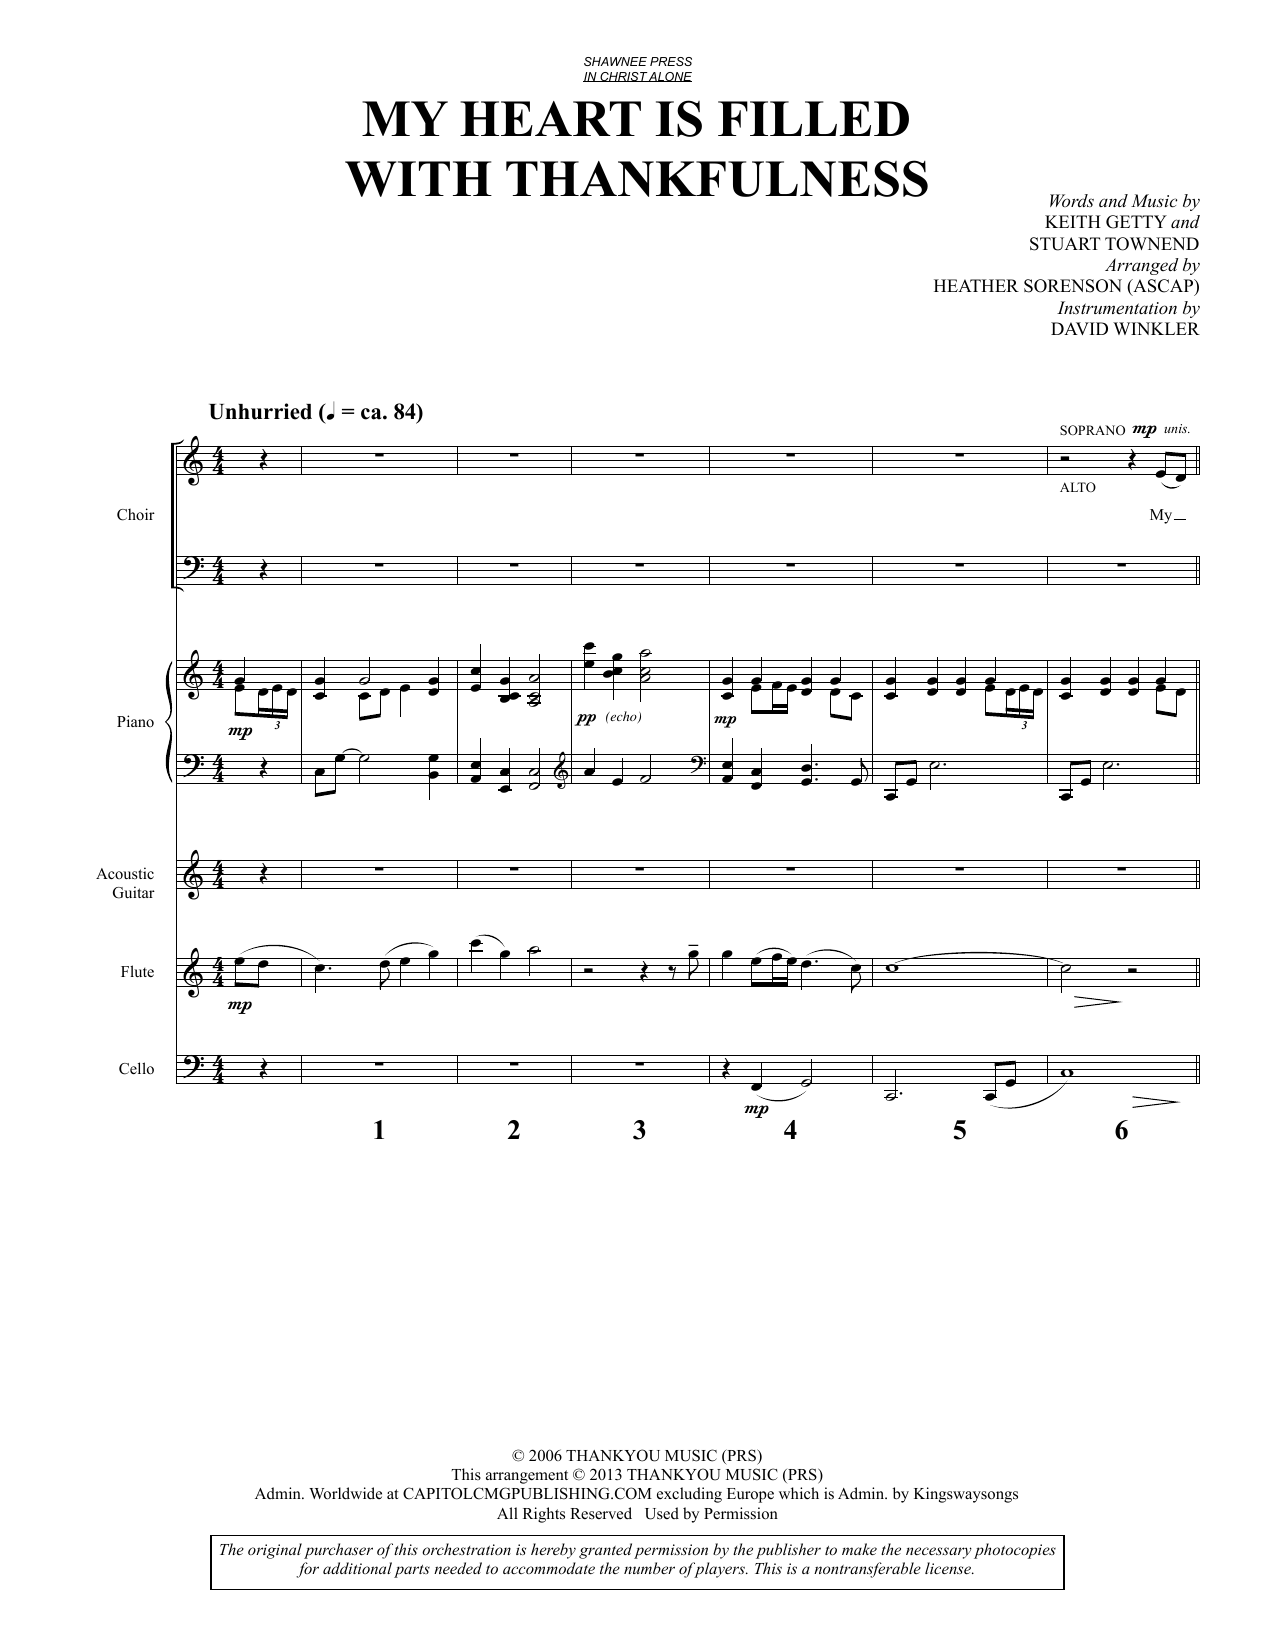 My Heart Is Filled with Thankfulness - Full Score Sheet Music